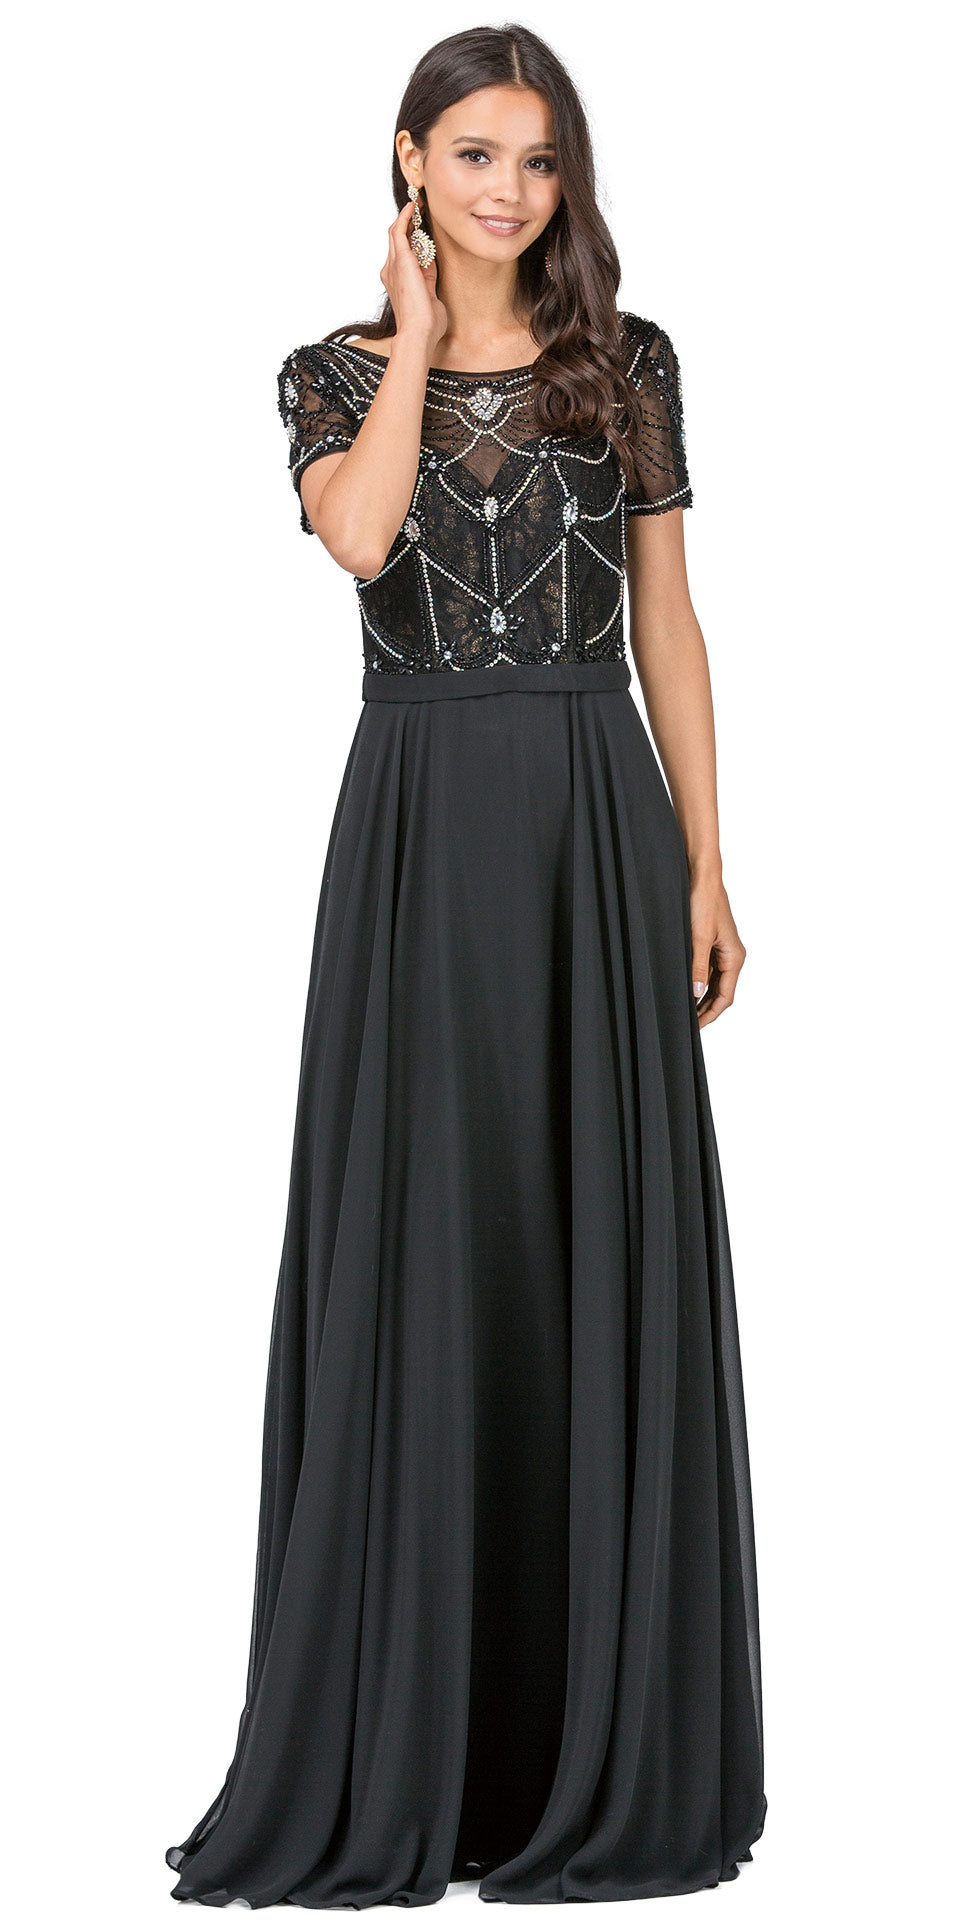 Image of Boat Neck Half Sleeves Beaded Mesh Top Long Formal Mob Dress in Black